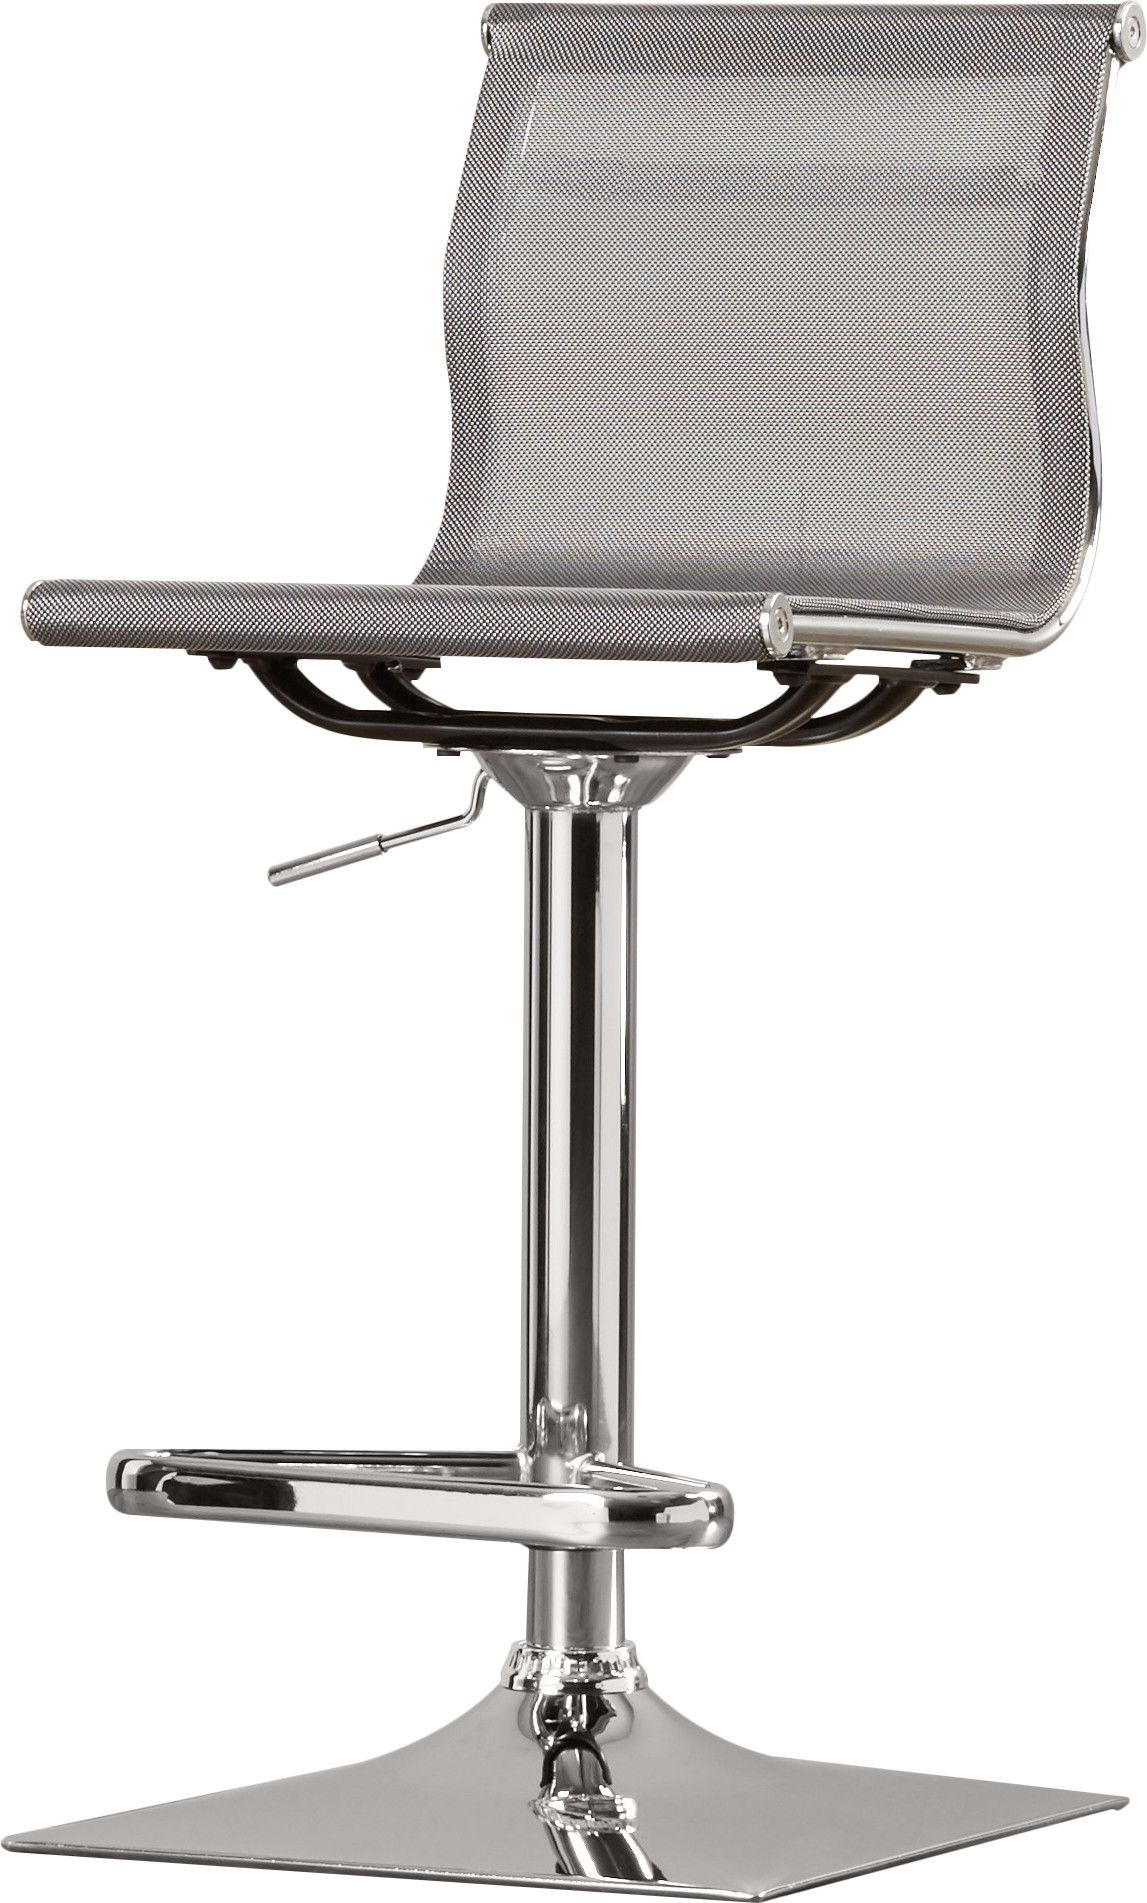 stool stools kitchen until bottom top target colors a swivel look industrial bar for furniture counter made s from with metal of best walmart variety charming backless design gorgeous black ottoman